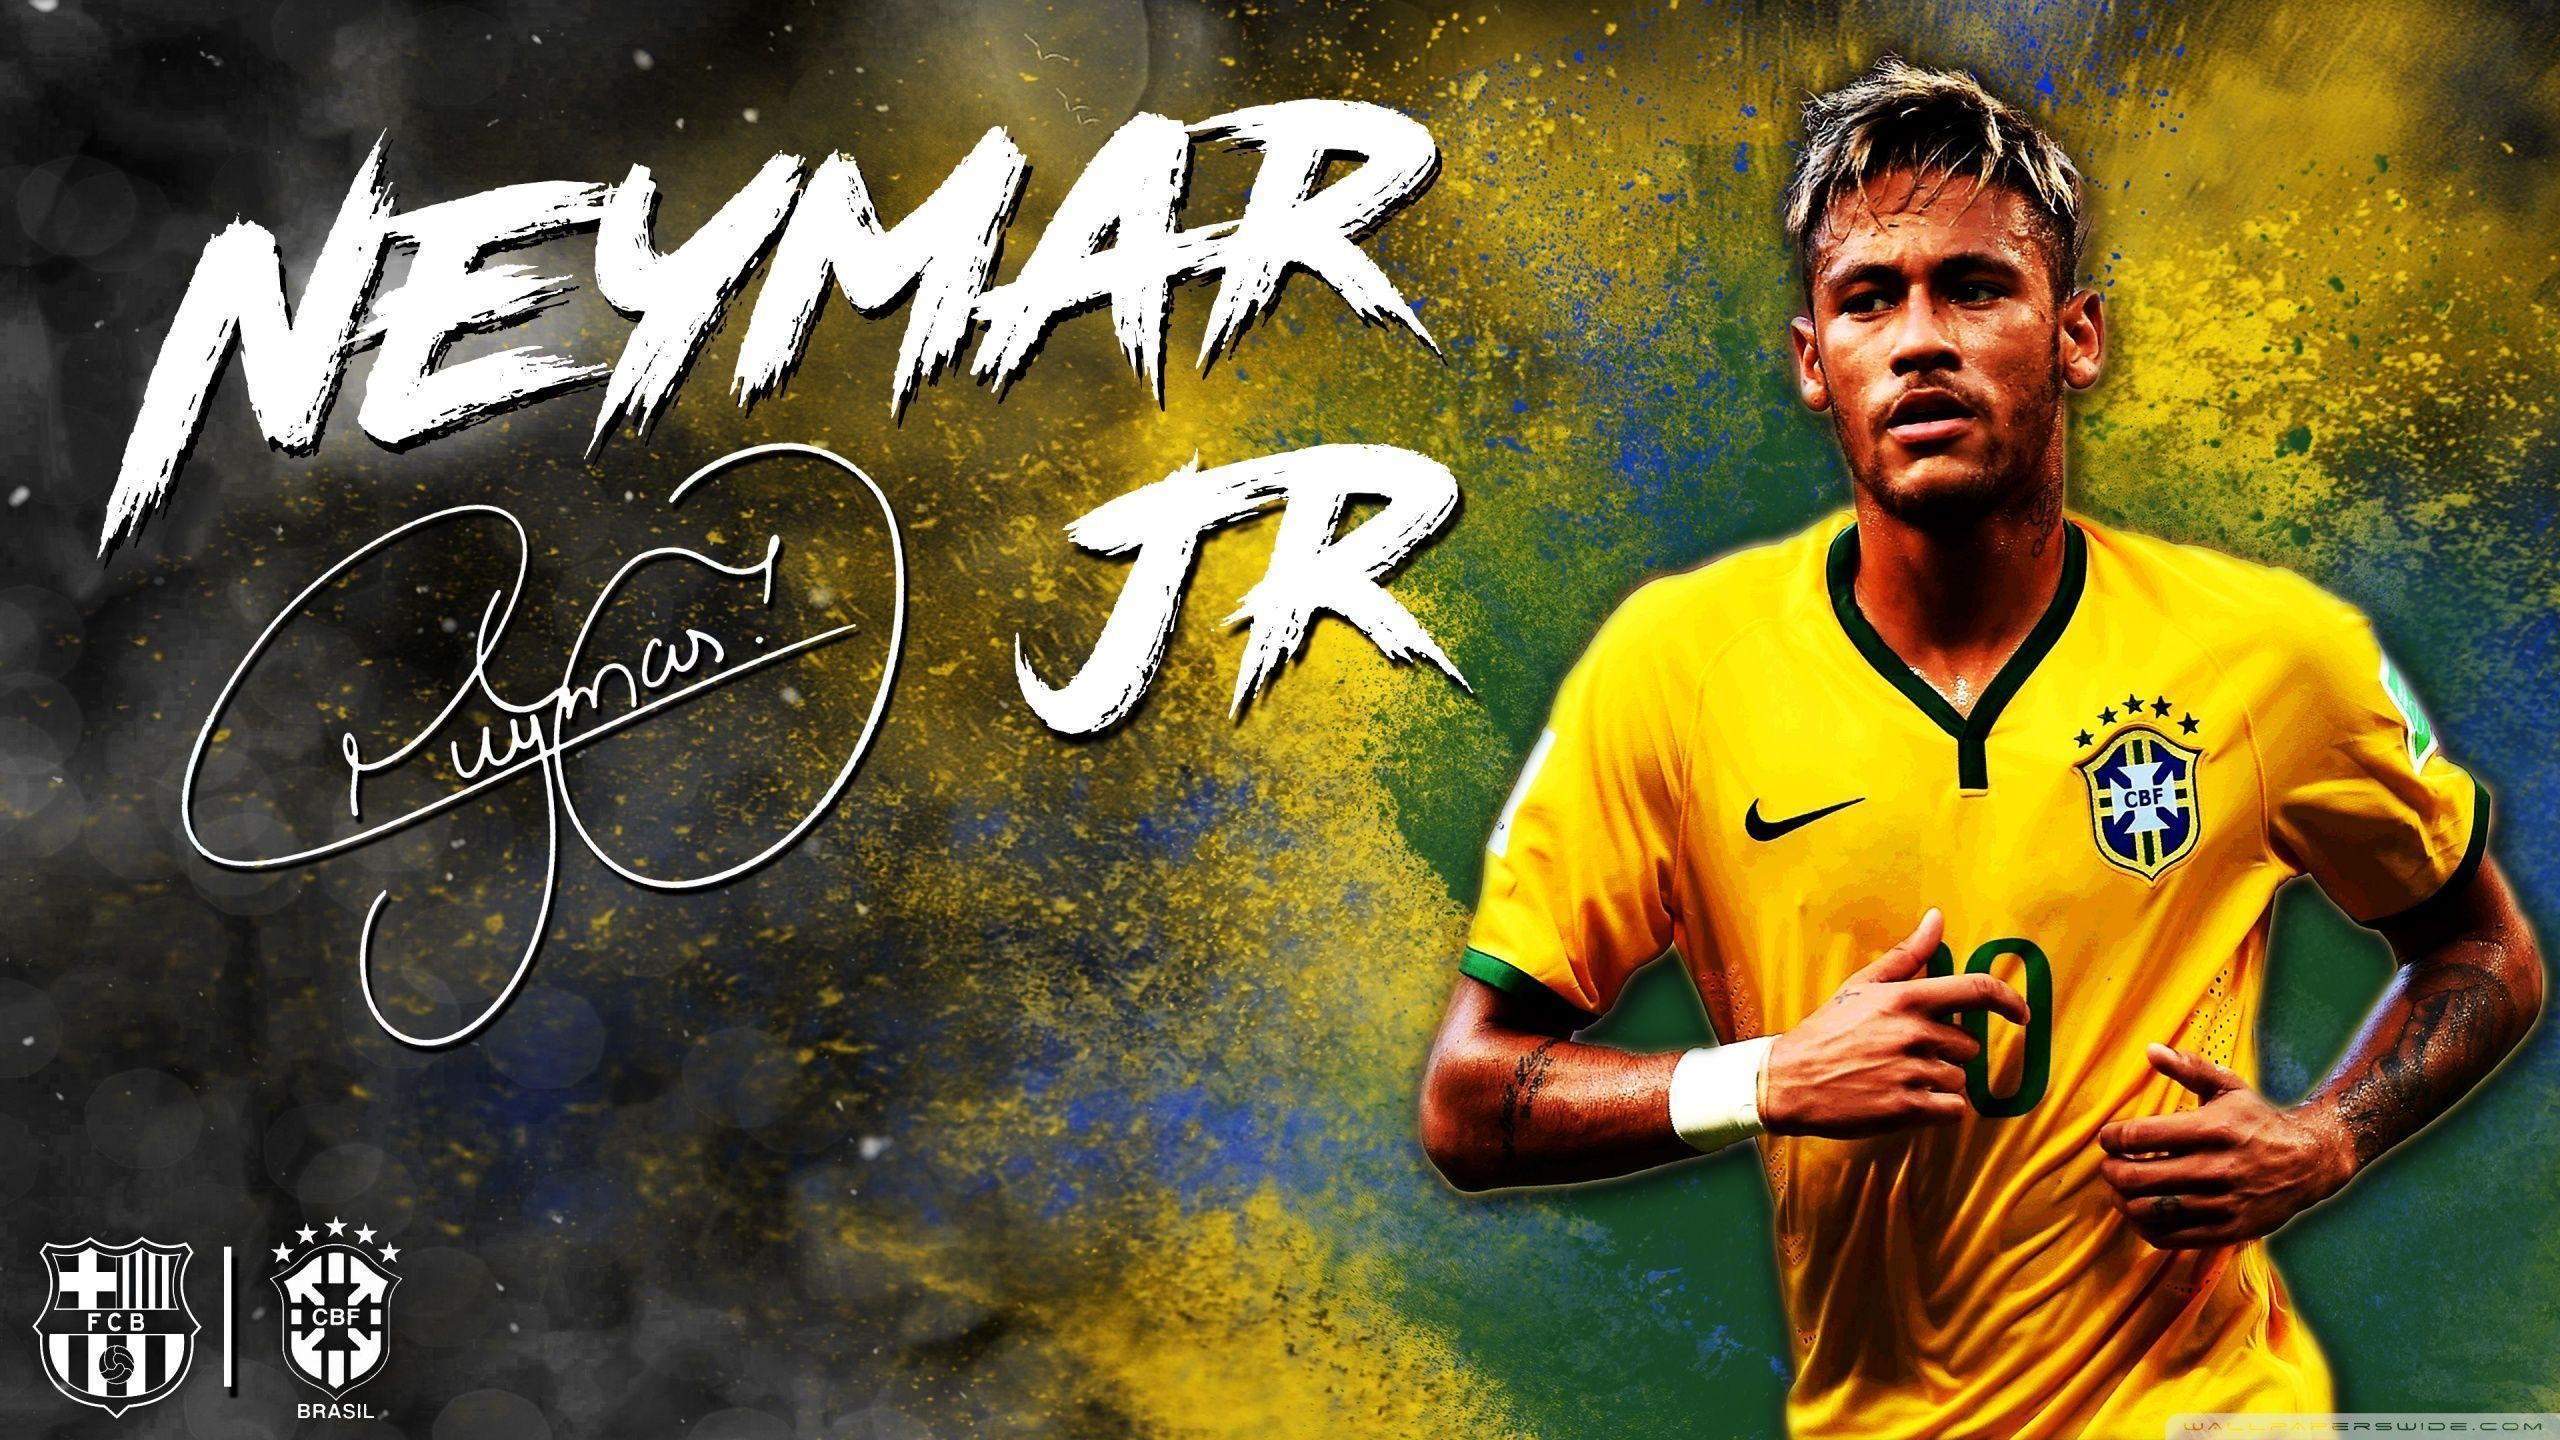 Neymar Jr. Barcelona Brazil HD Desktop Wallpaper : High Definition .